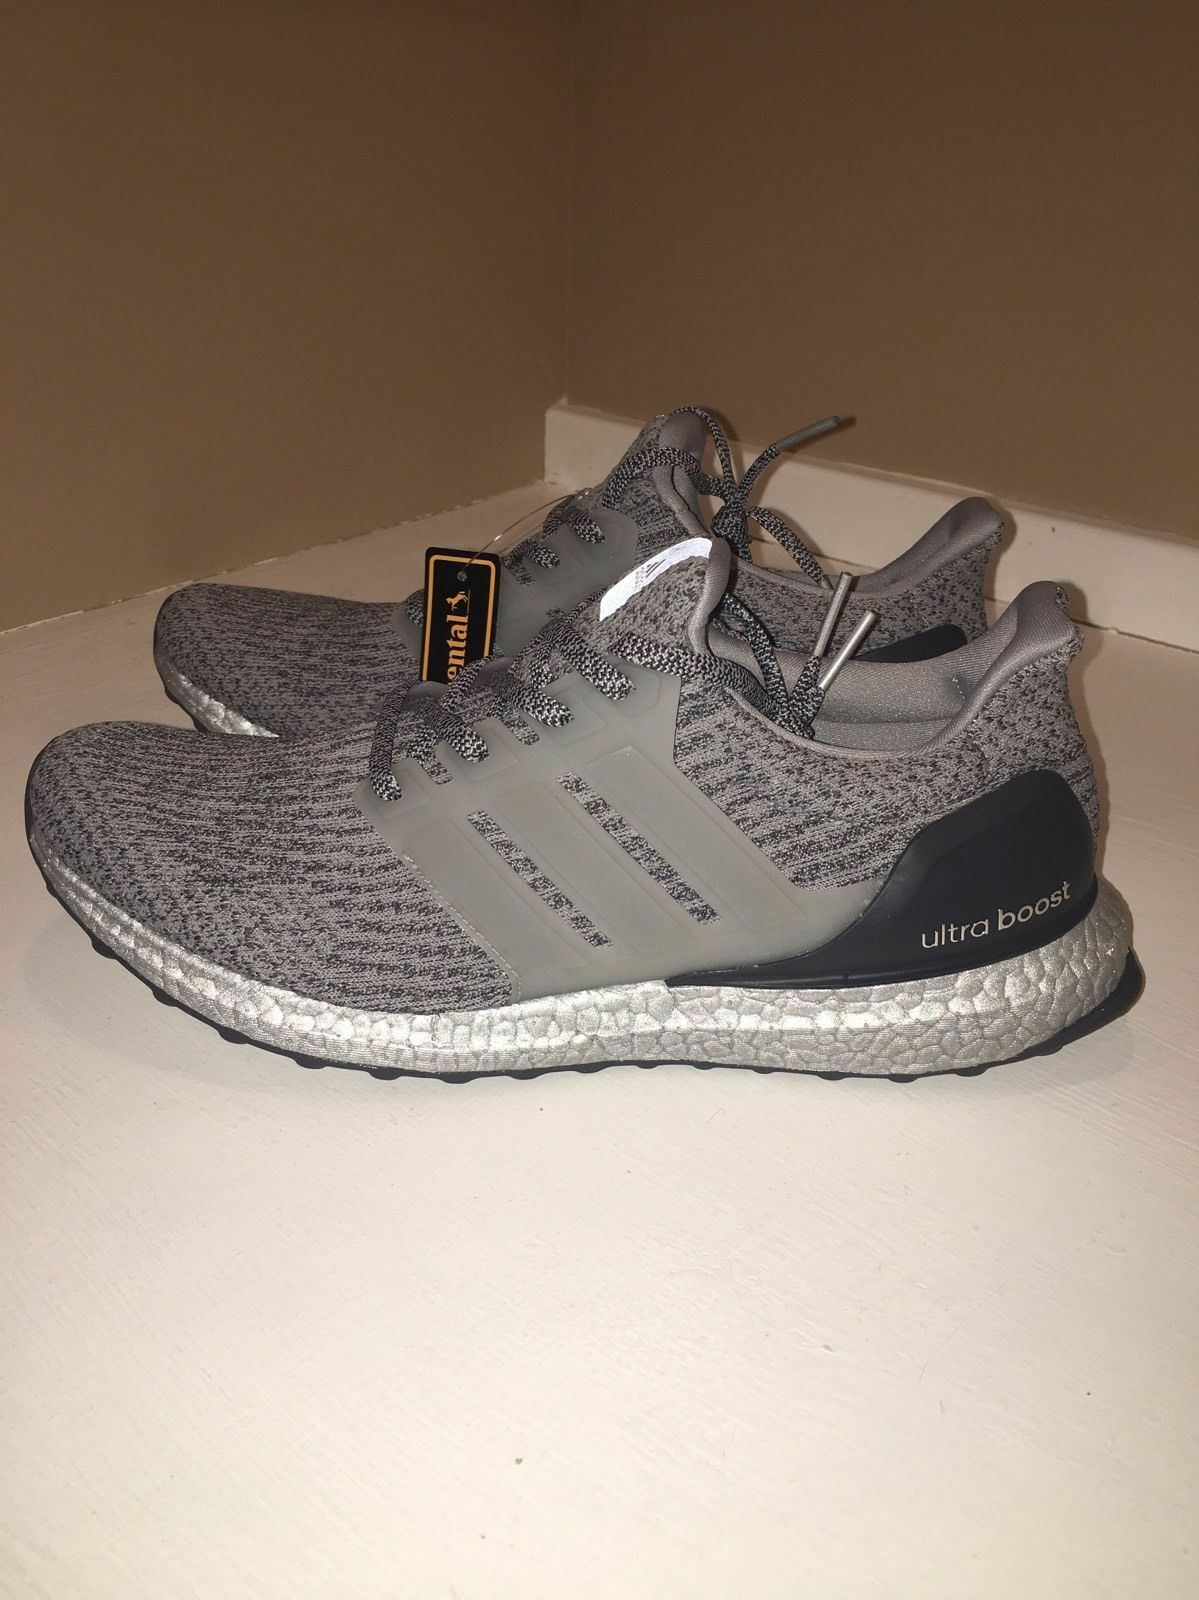 Adidas Ultra Boost Authentic 3.0 Silver Pack BA8143 Superbowl Metallic Authentic Boost DS 8-11 bc5958